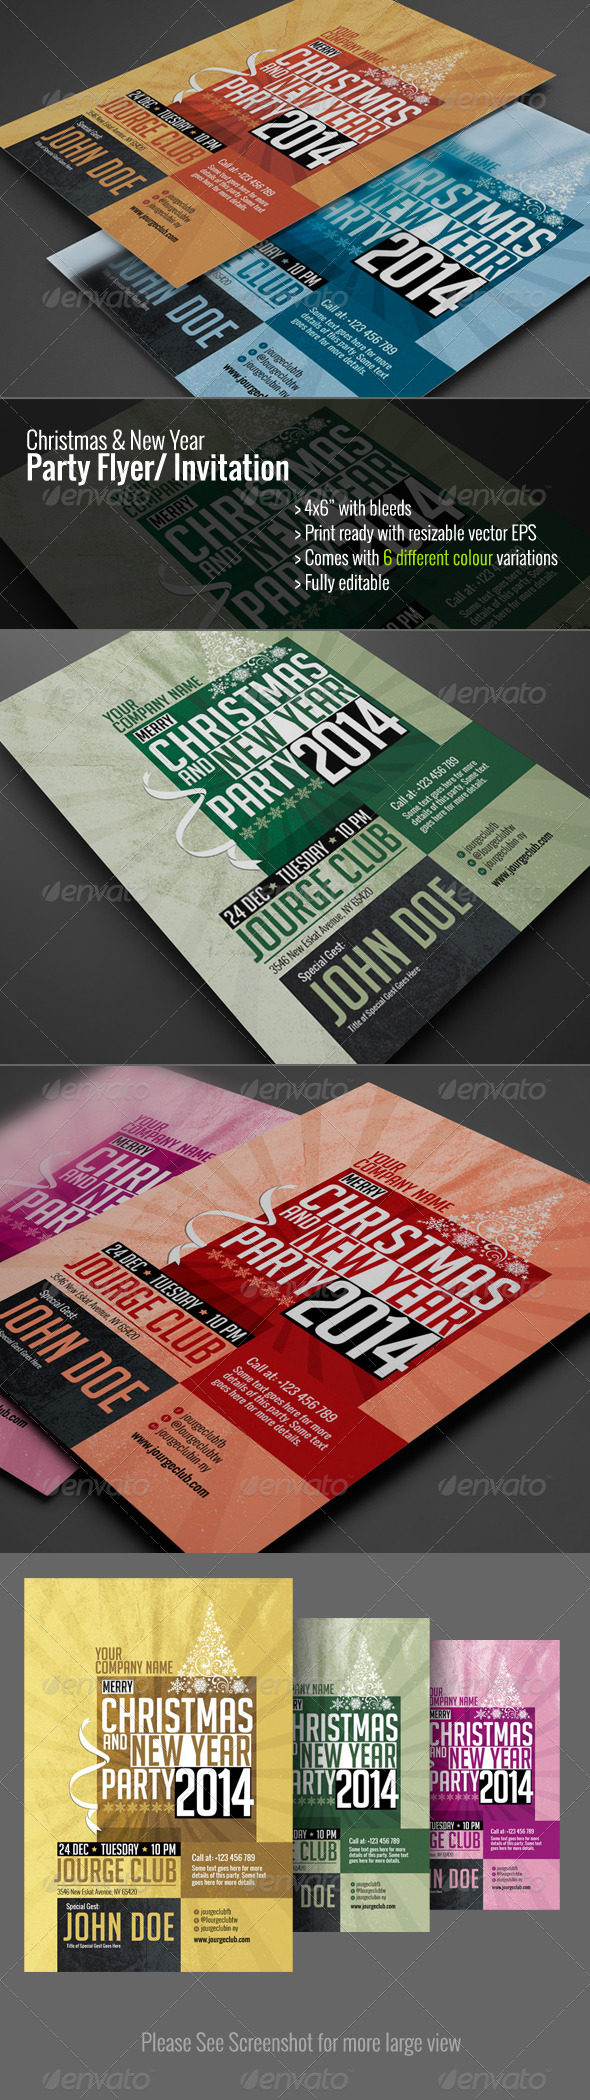 GraphicRiver Christmas & New Year Party Flyer Invitation 6237404